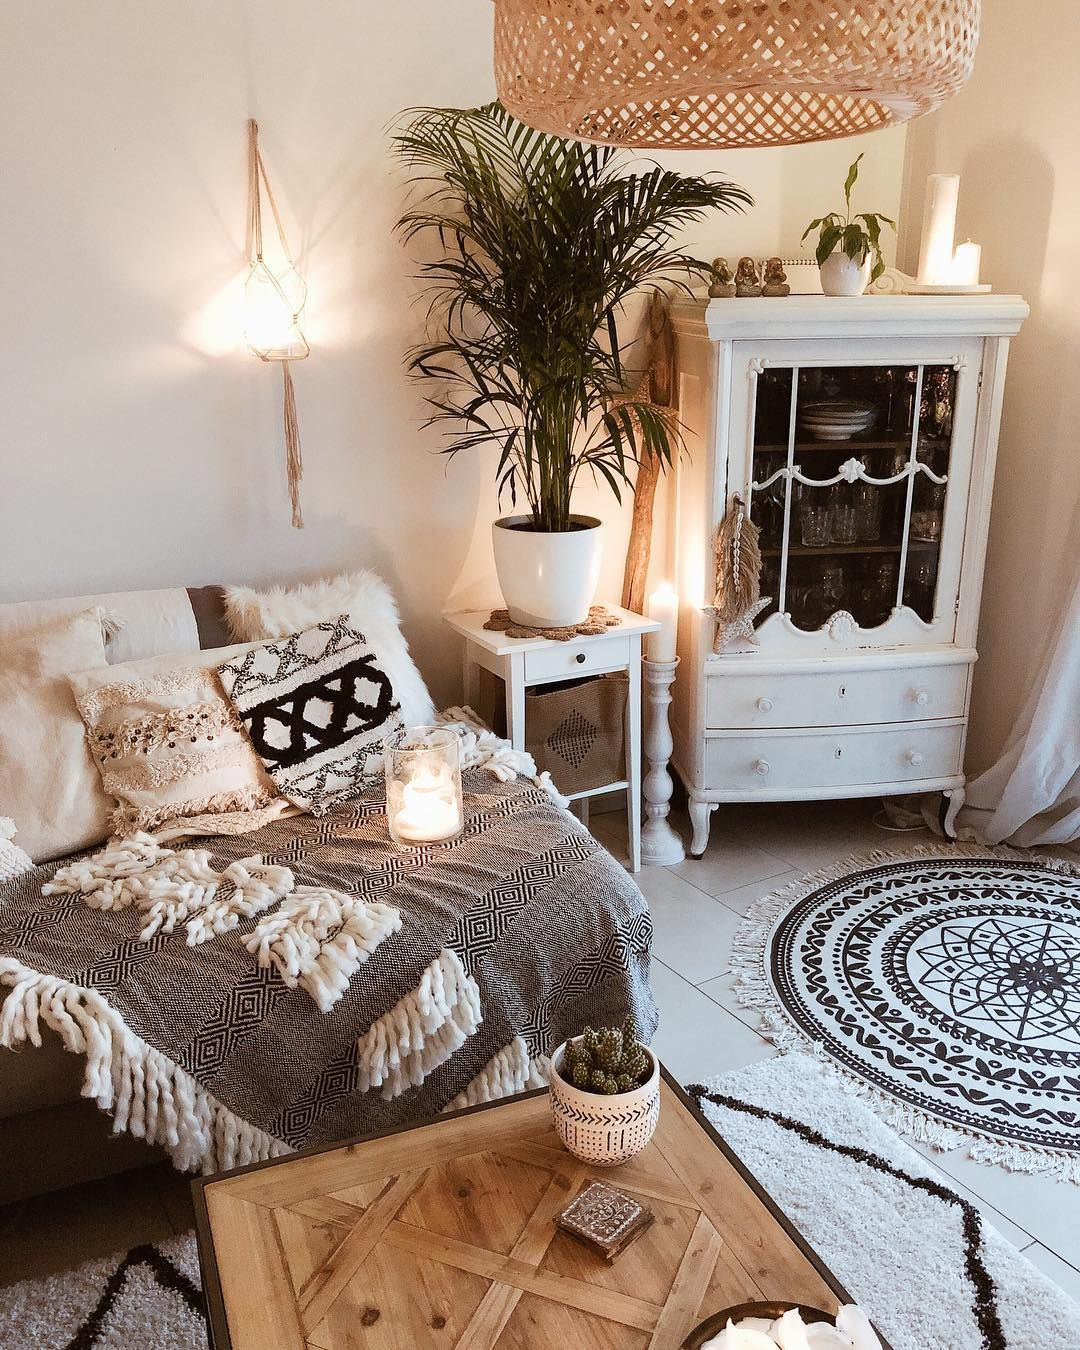 Scandi Boho Home Instagram _heimliebe_ Diy home decor